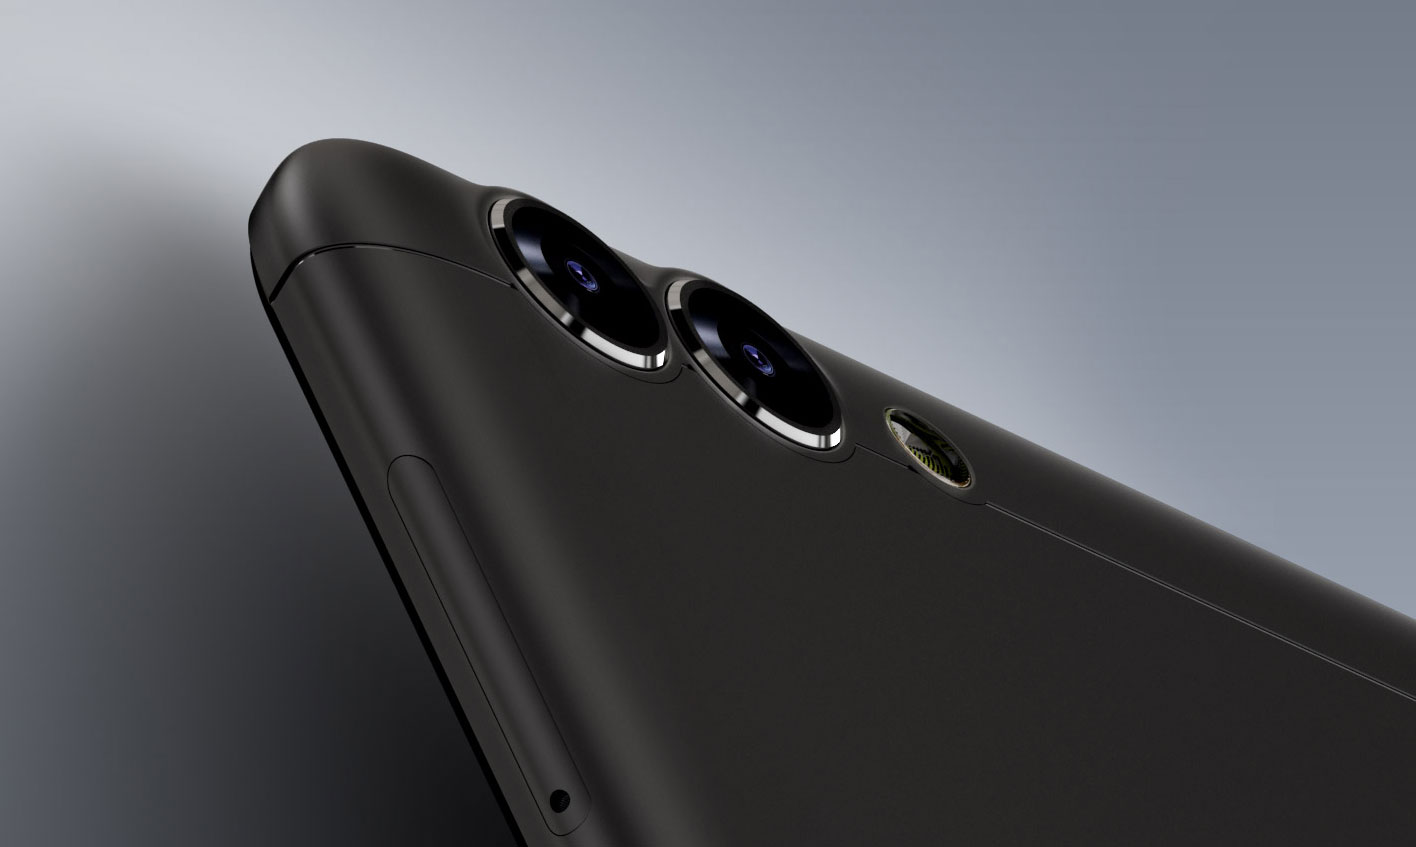 Open pre-order the smartphone Bluboo Dual with dual camera and metal body